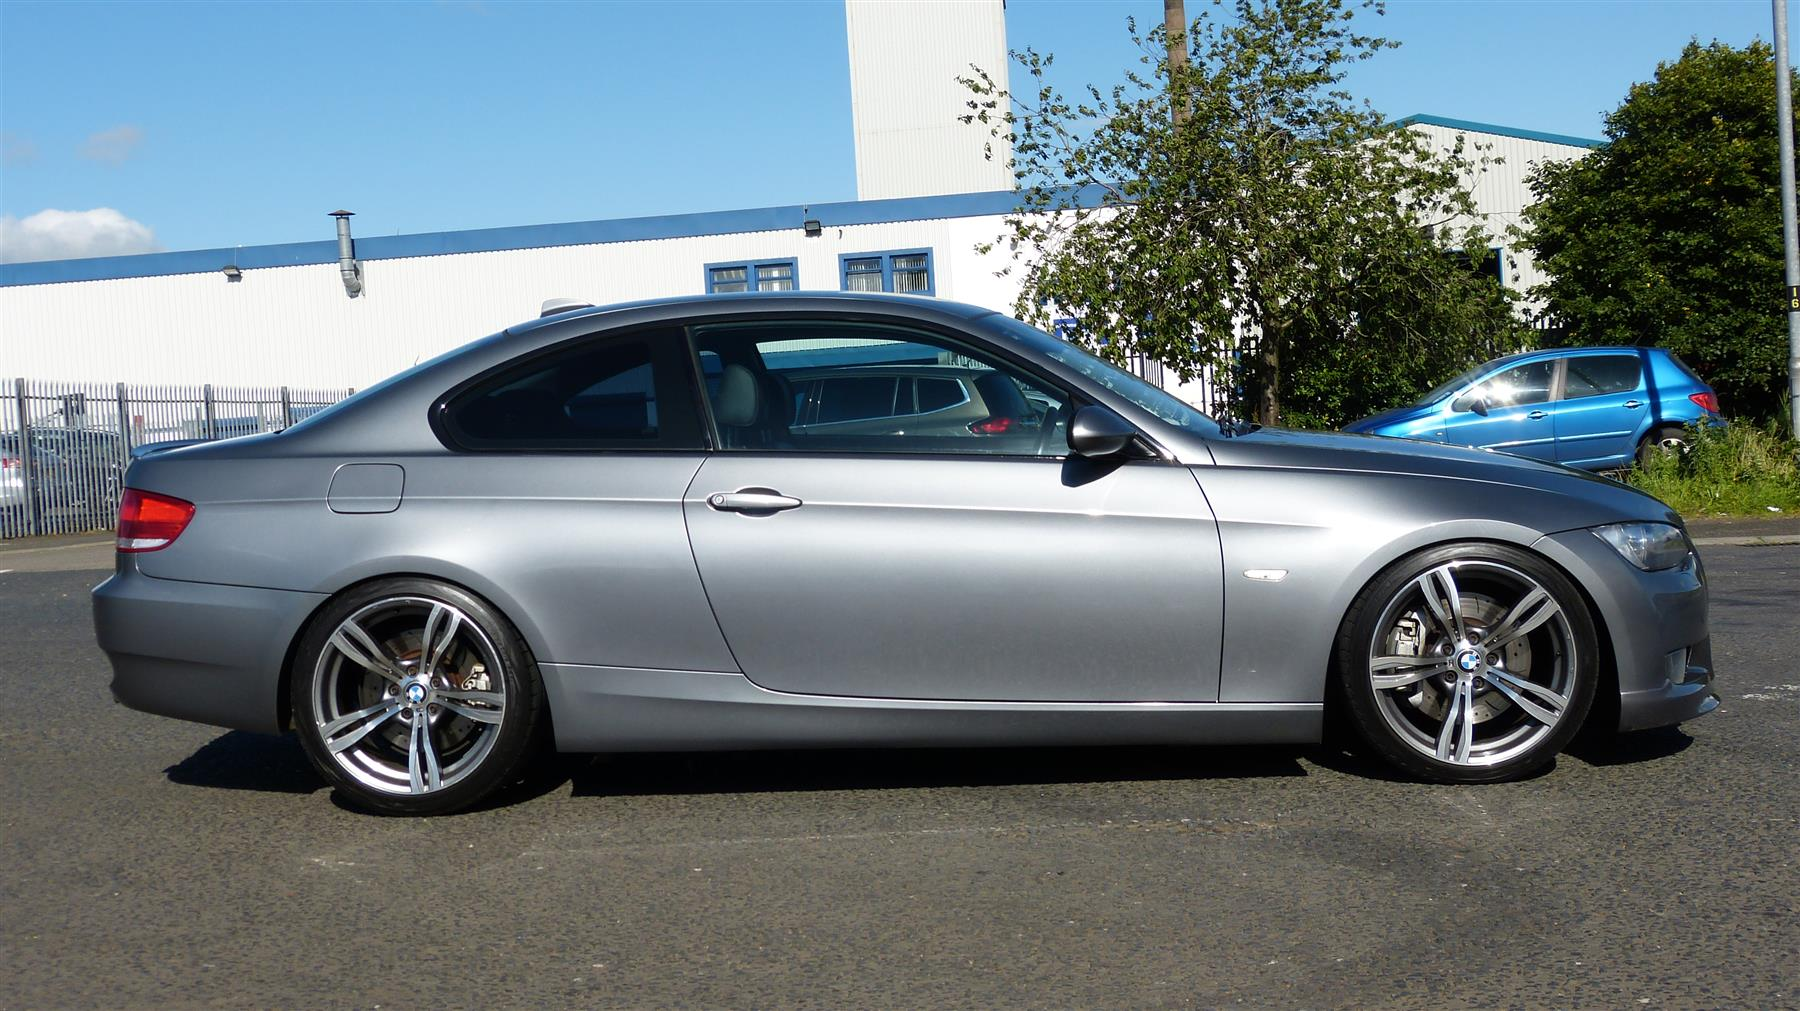 BMW 3 series 335d 2007 photo - 5